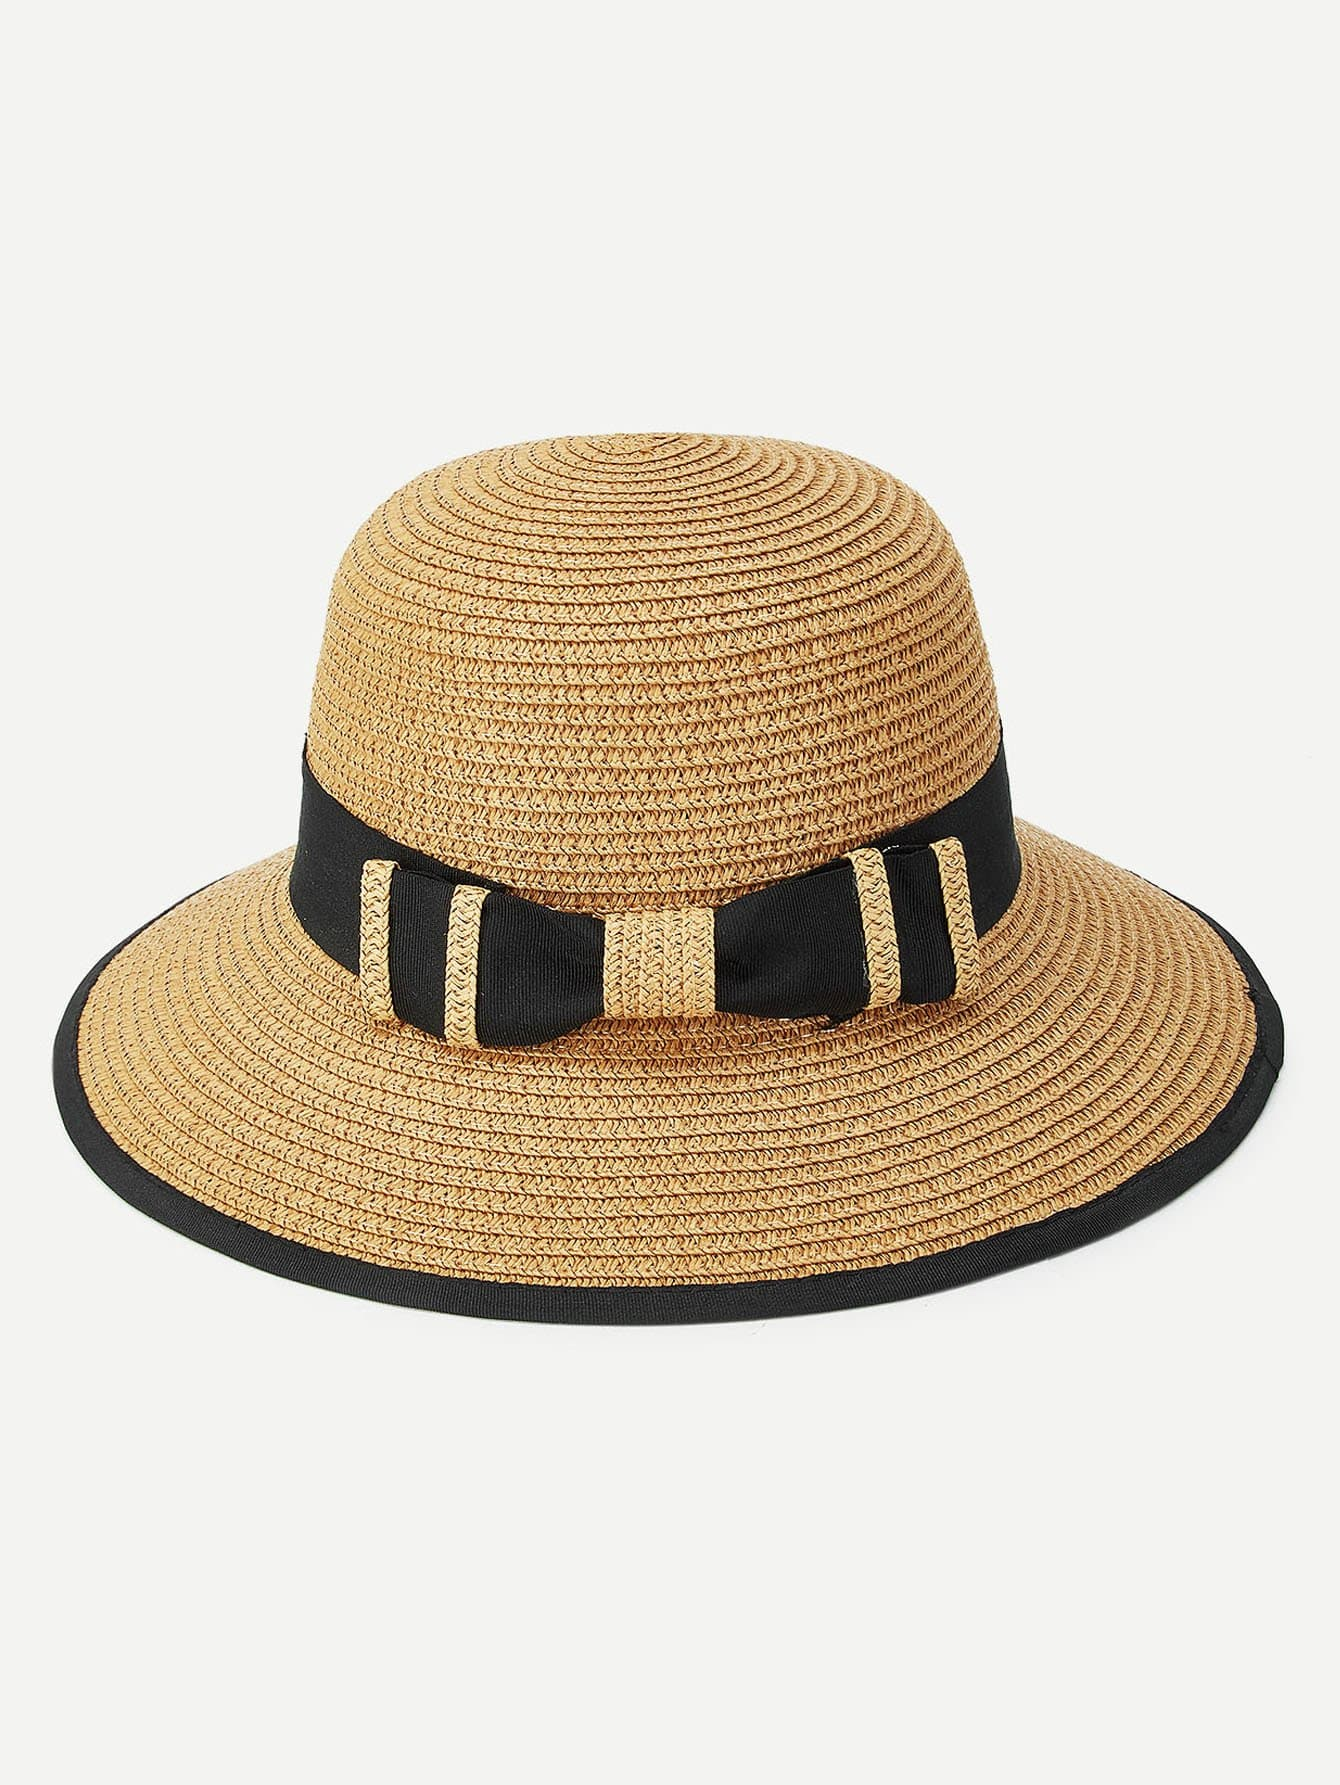 Contrast Edge Straw Hat stetson men s breakers premium shantung straw hat